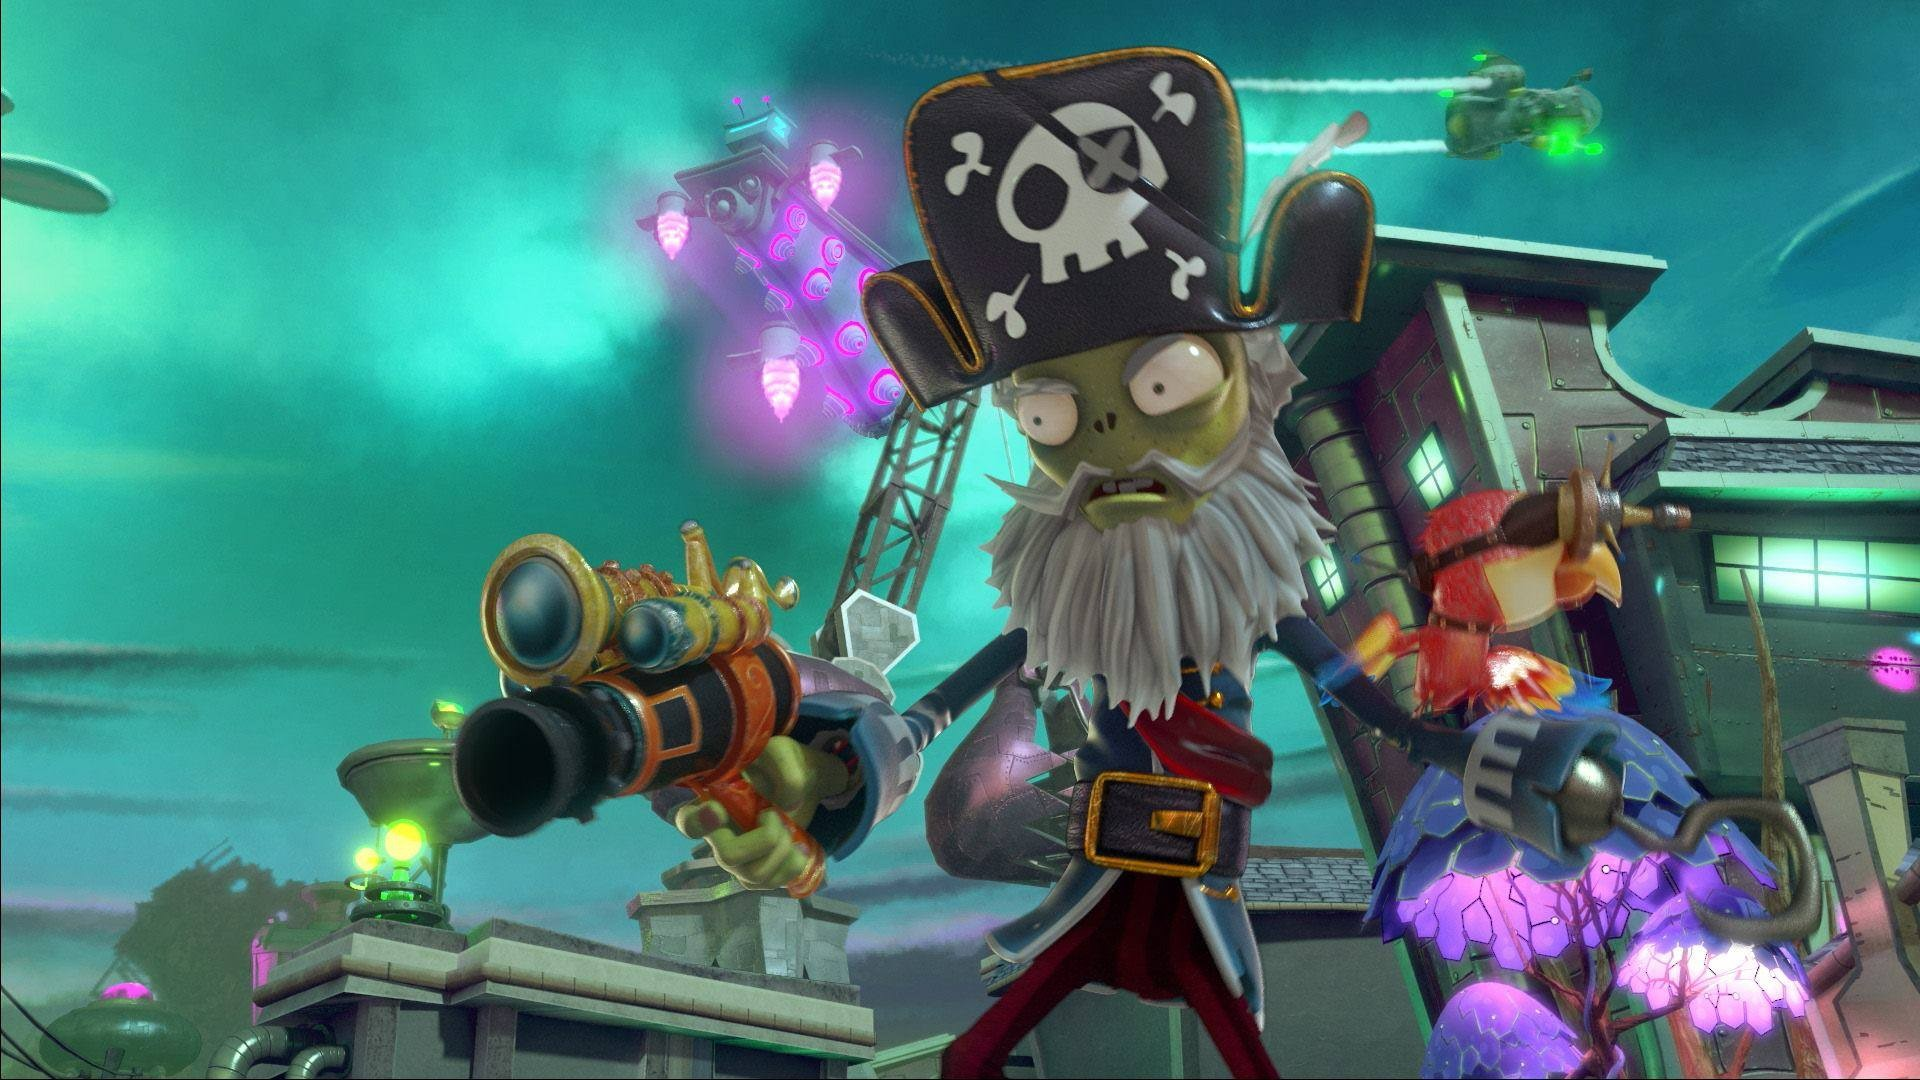 Buy Plants Vs Zombies Garden Warfare 2 Origin